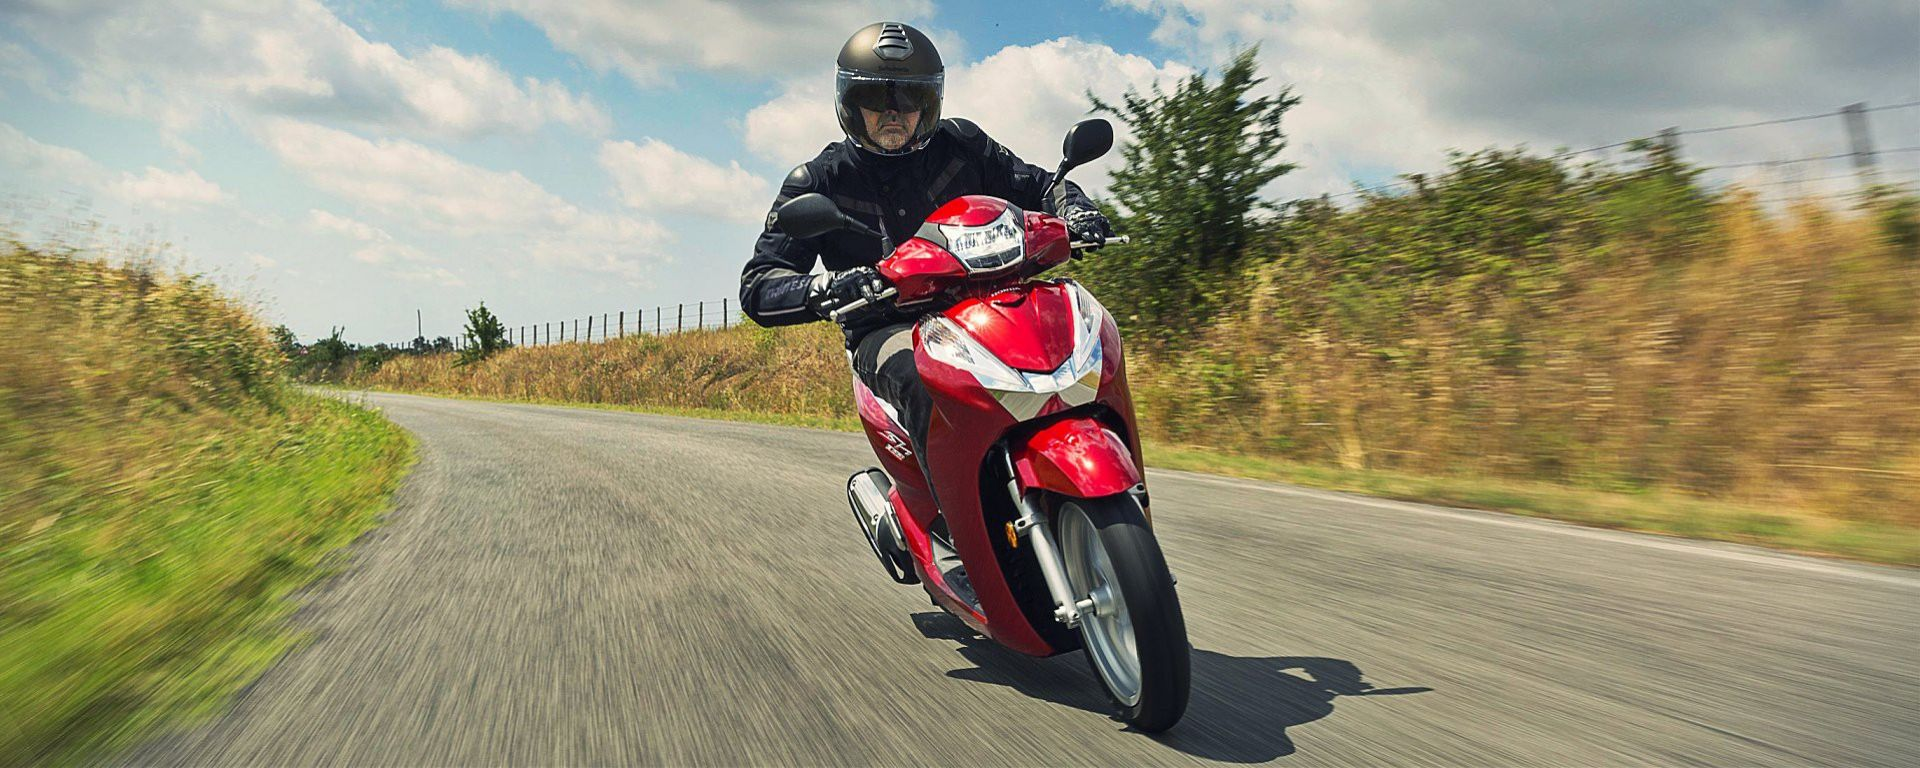 Honda SH300i ABS 2016: il video